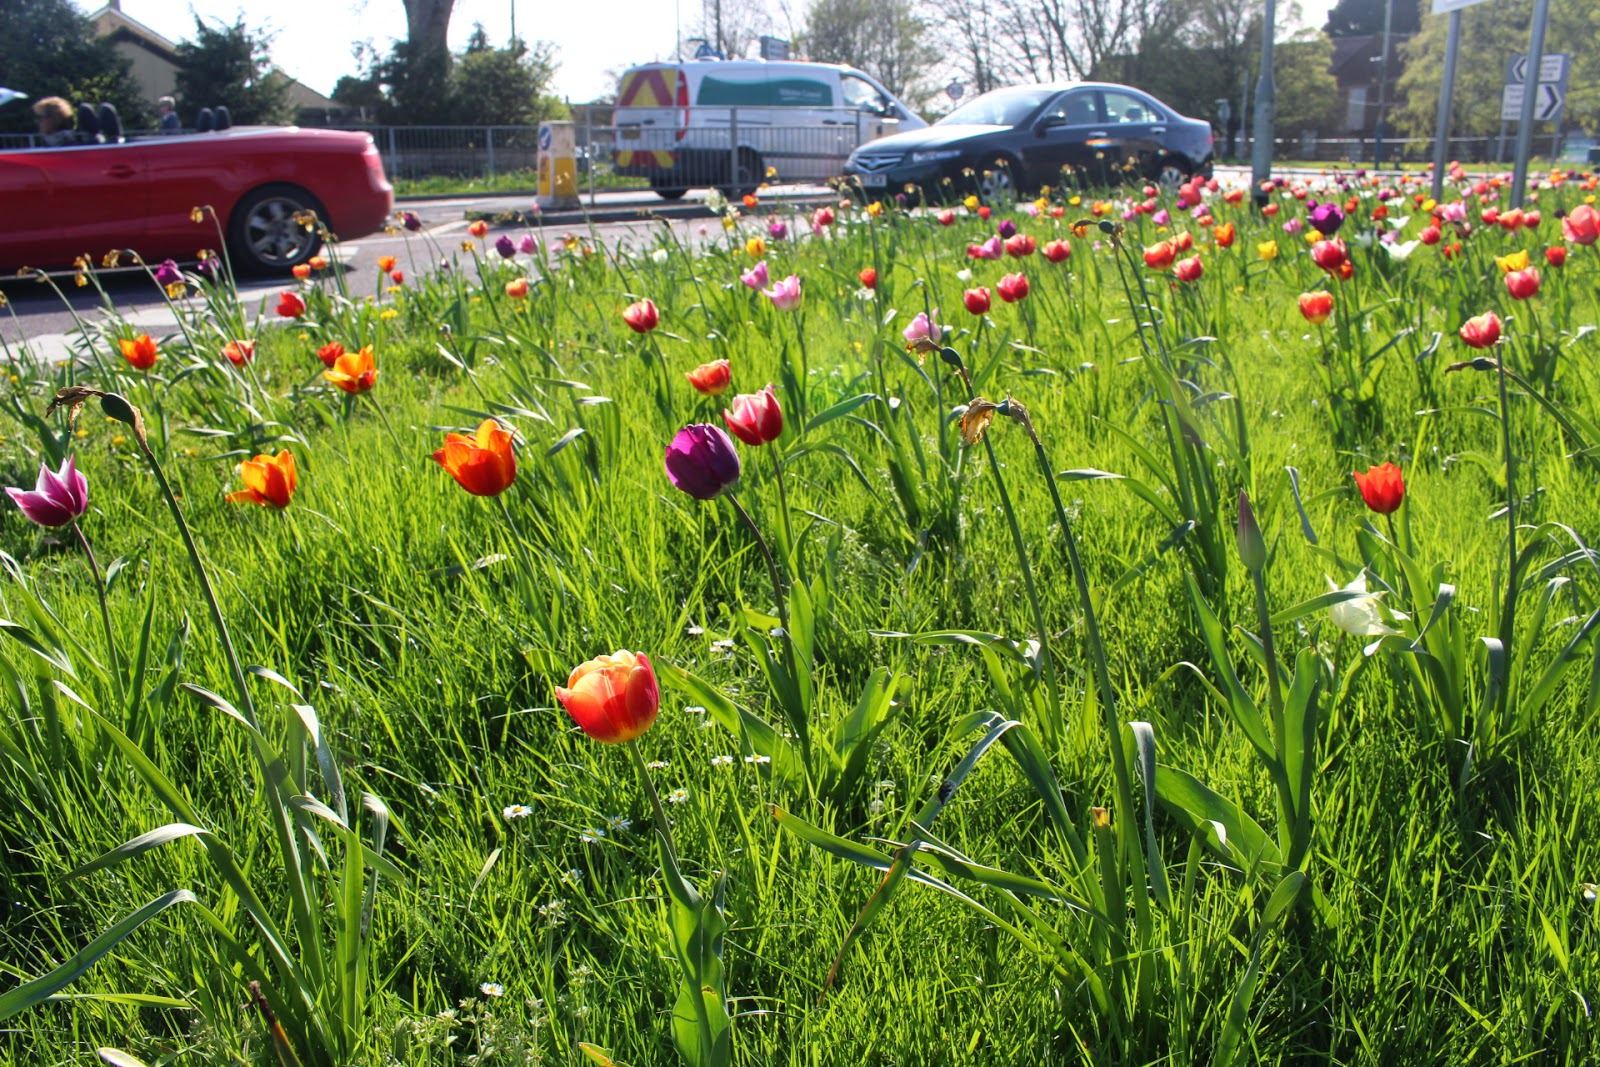 Brightly coloured guerrilla planted tulips on a grass verge in Chippenham